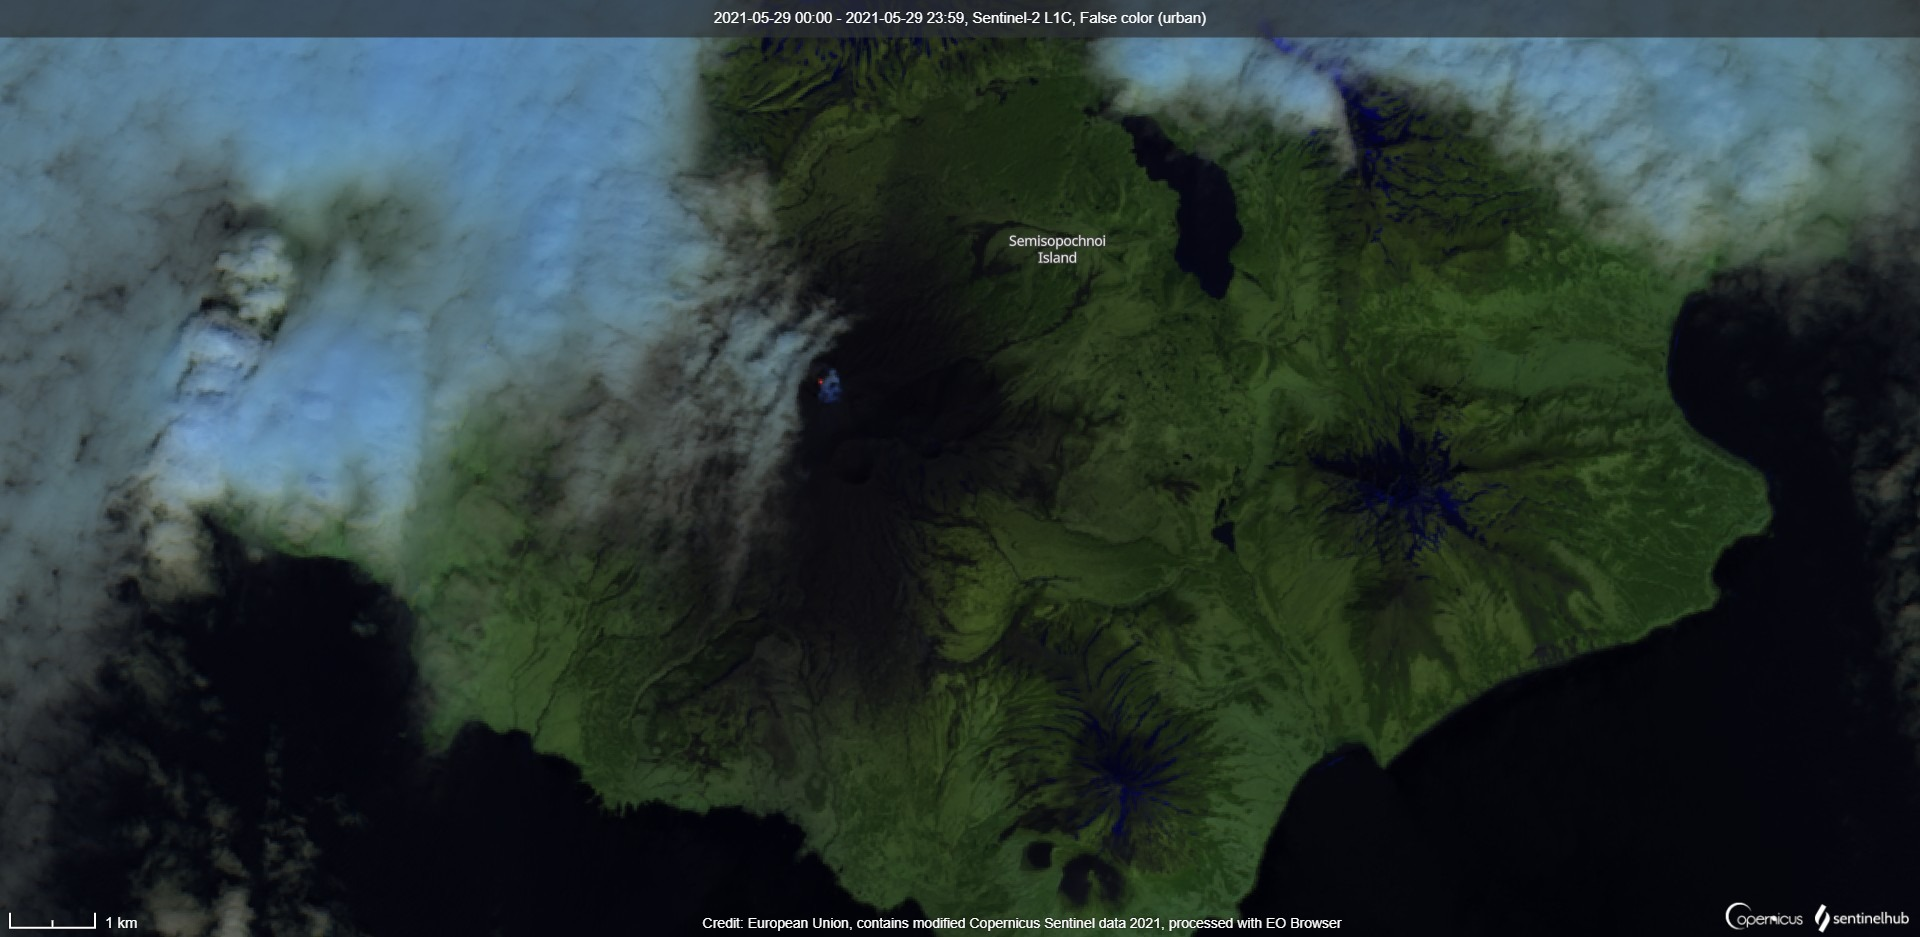 Elevated surface temperatures in the inner Cerberus crater (image: Sentinel 2)